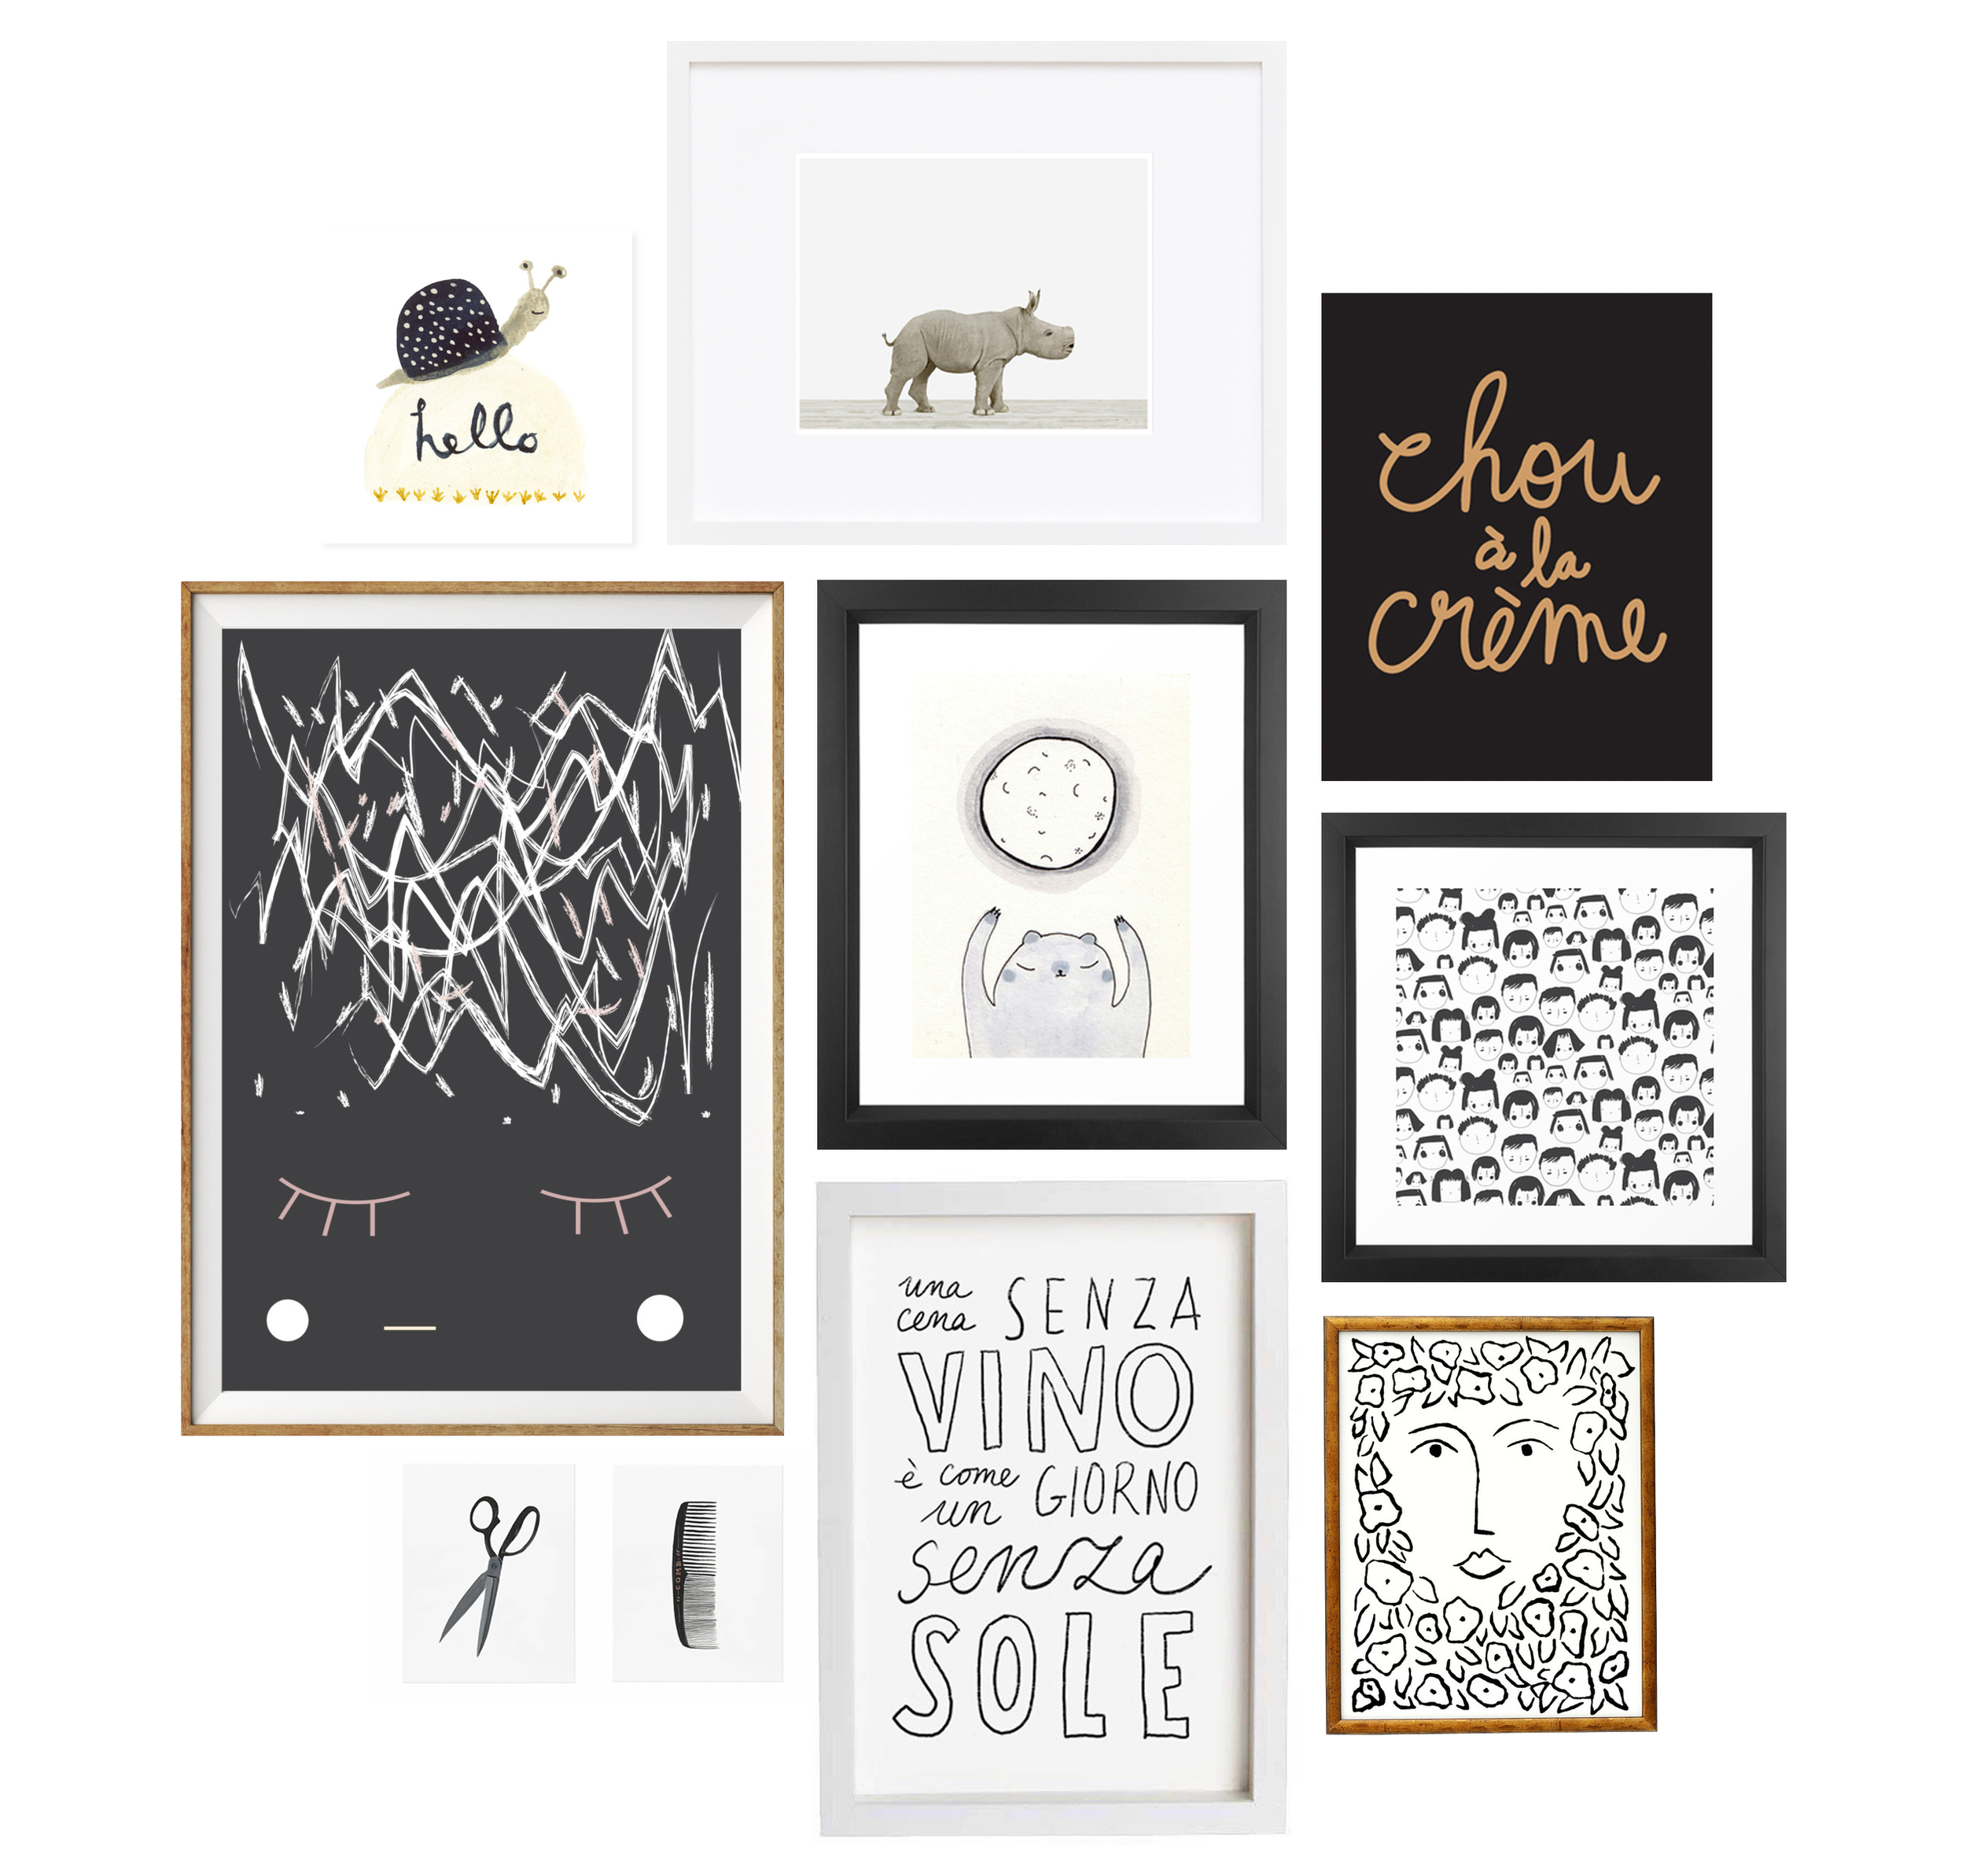 hello snail  by in my back yard /  abstract nursery art print  by alphonnsine /  scissors and comb  by rifle paper co. /  baby rhino  by the animal print shop /  moon bear  by rubyetc /  vino  by anek /  c hou à la créme   by nice day paper /  little faces in black and white  by zoe ingram /  fleur femme  by wayne pate